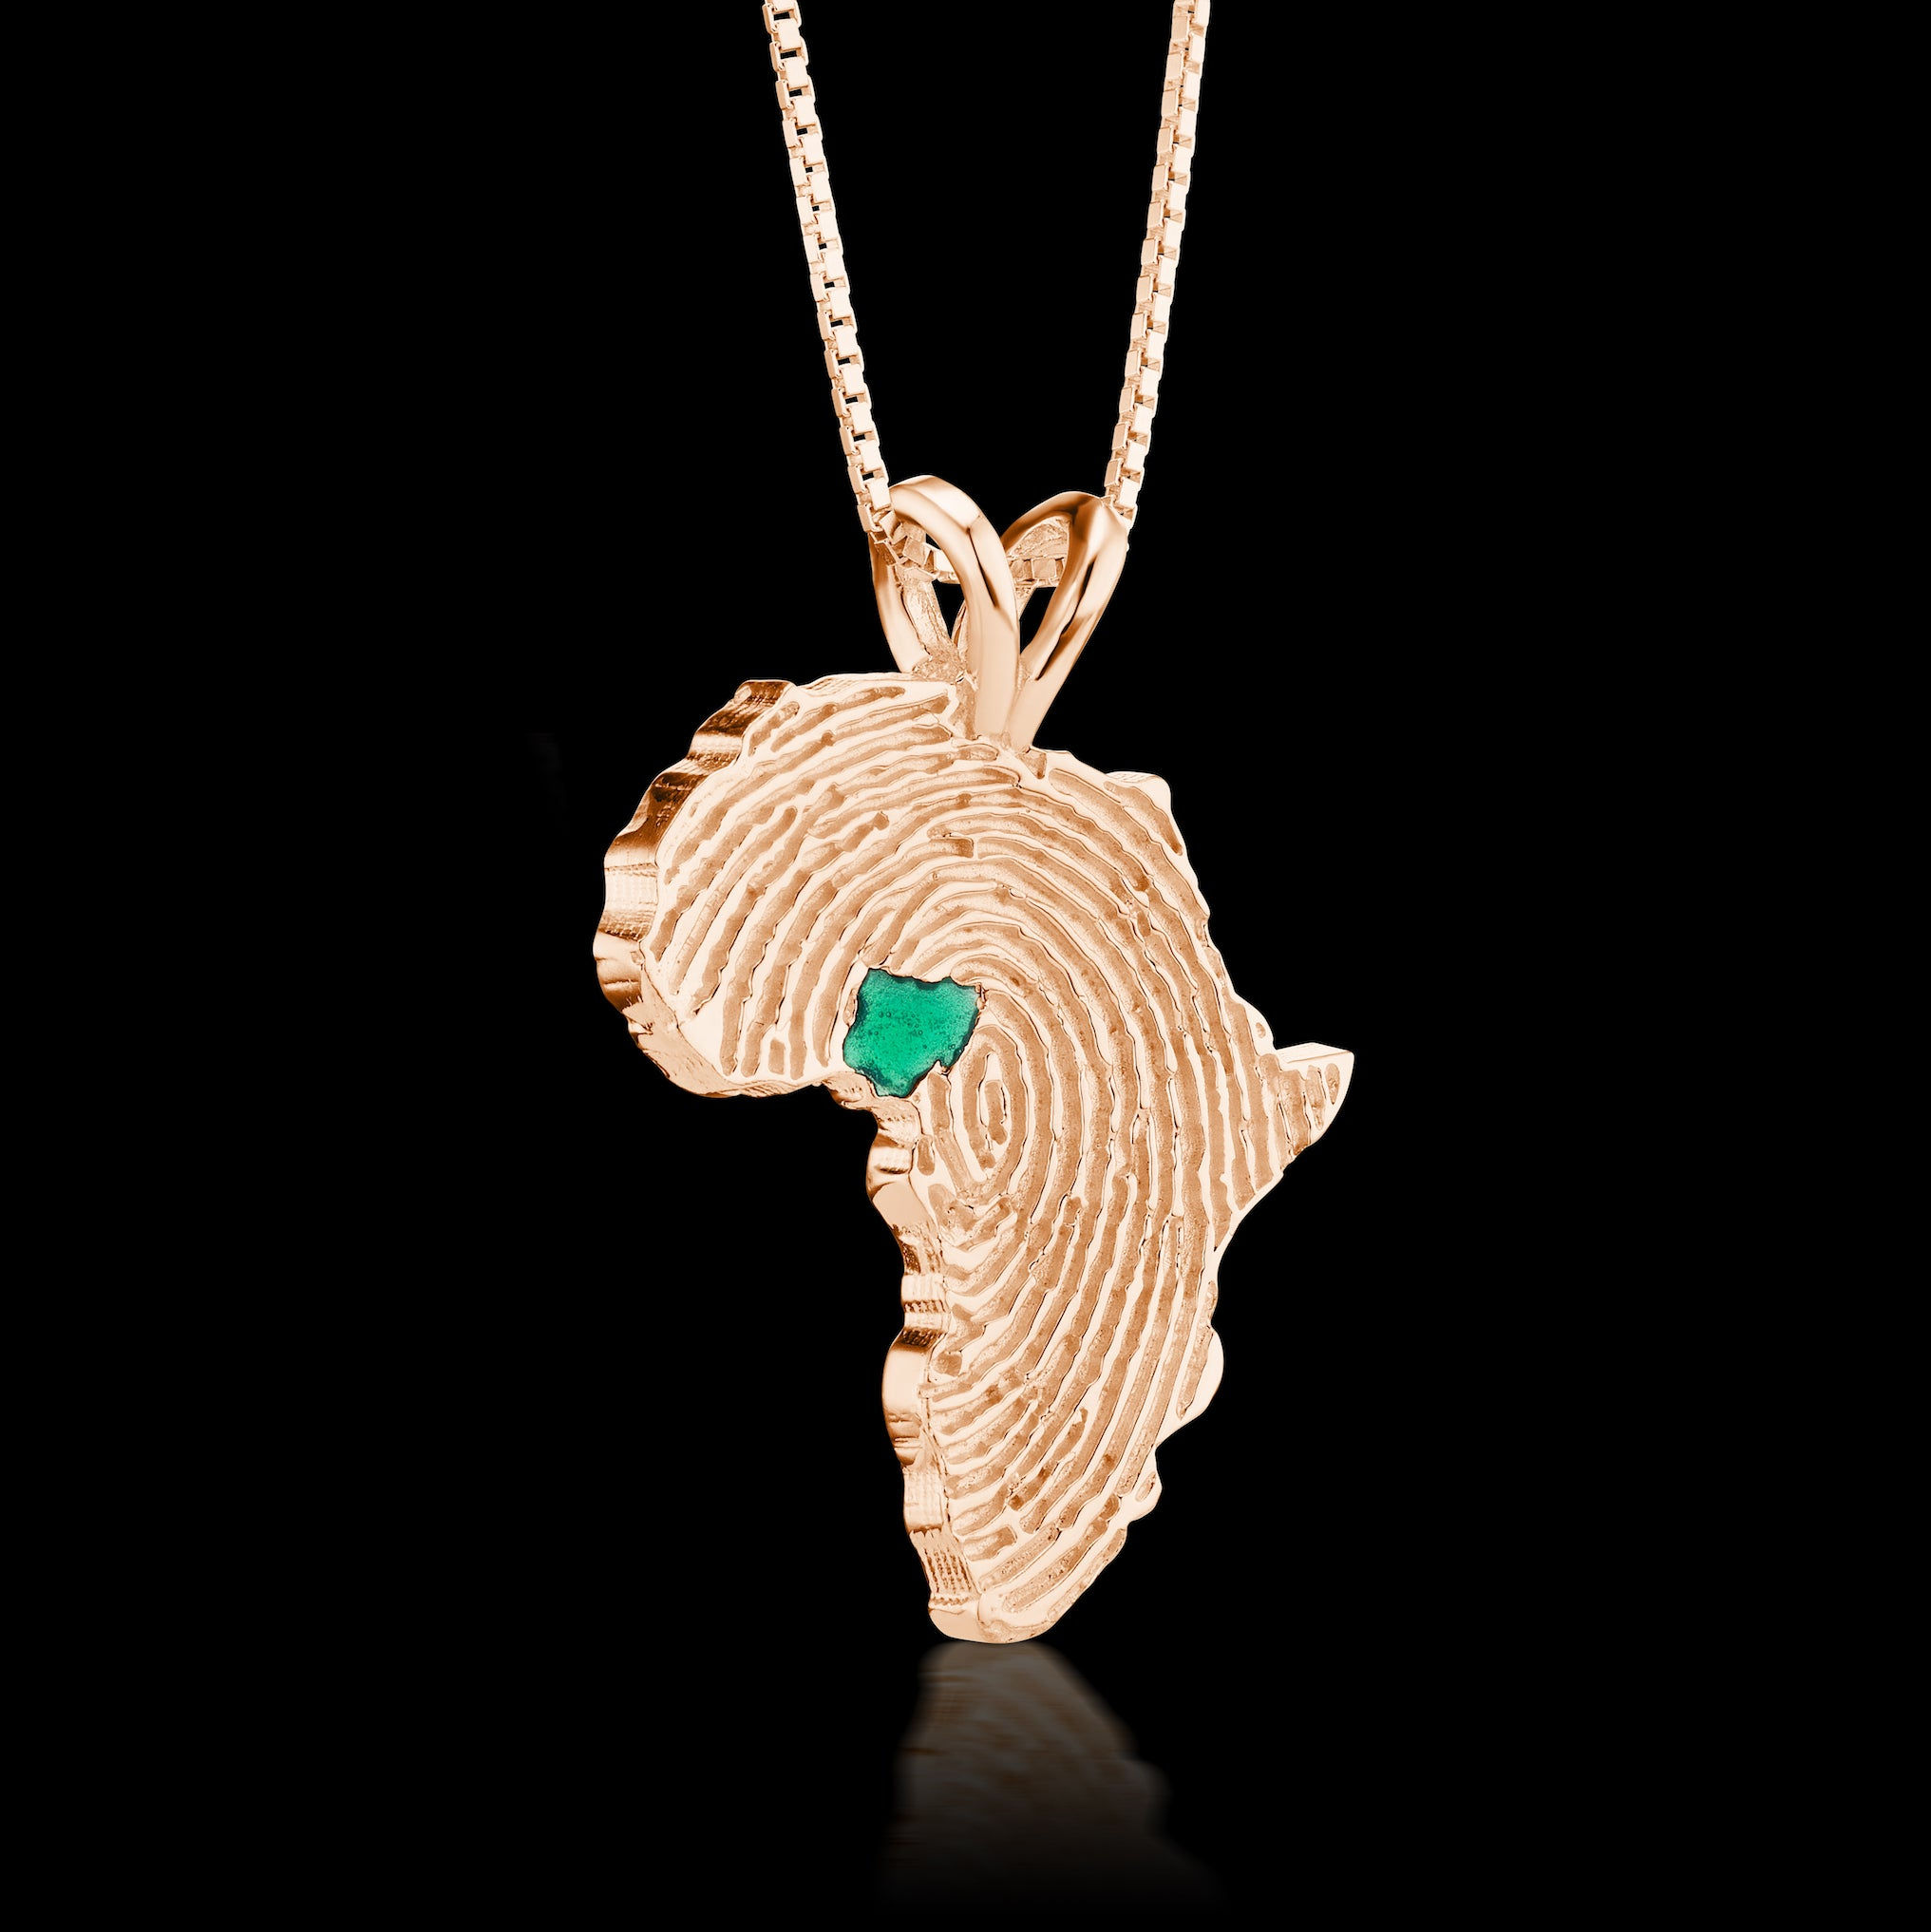 Nigeria Heirloom Pendant - 14K Rose Gold 43mm